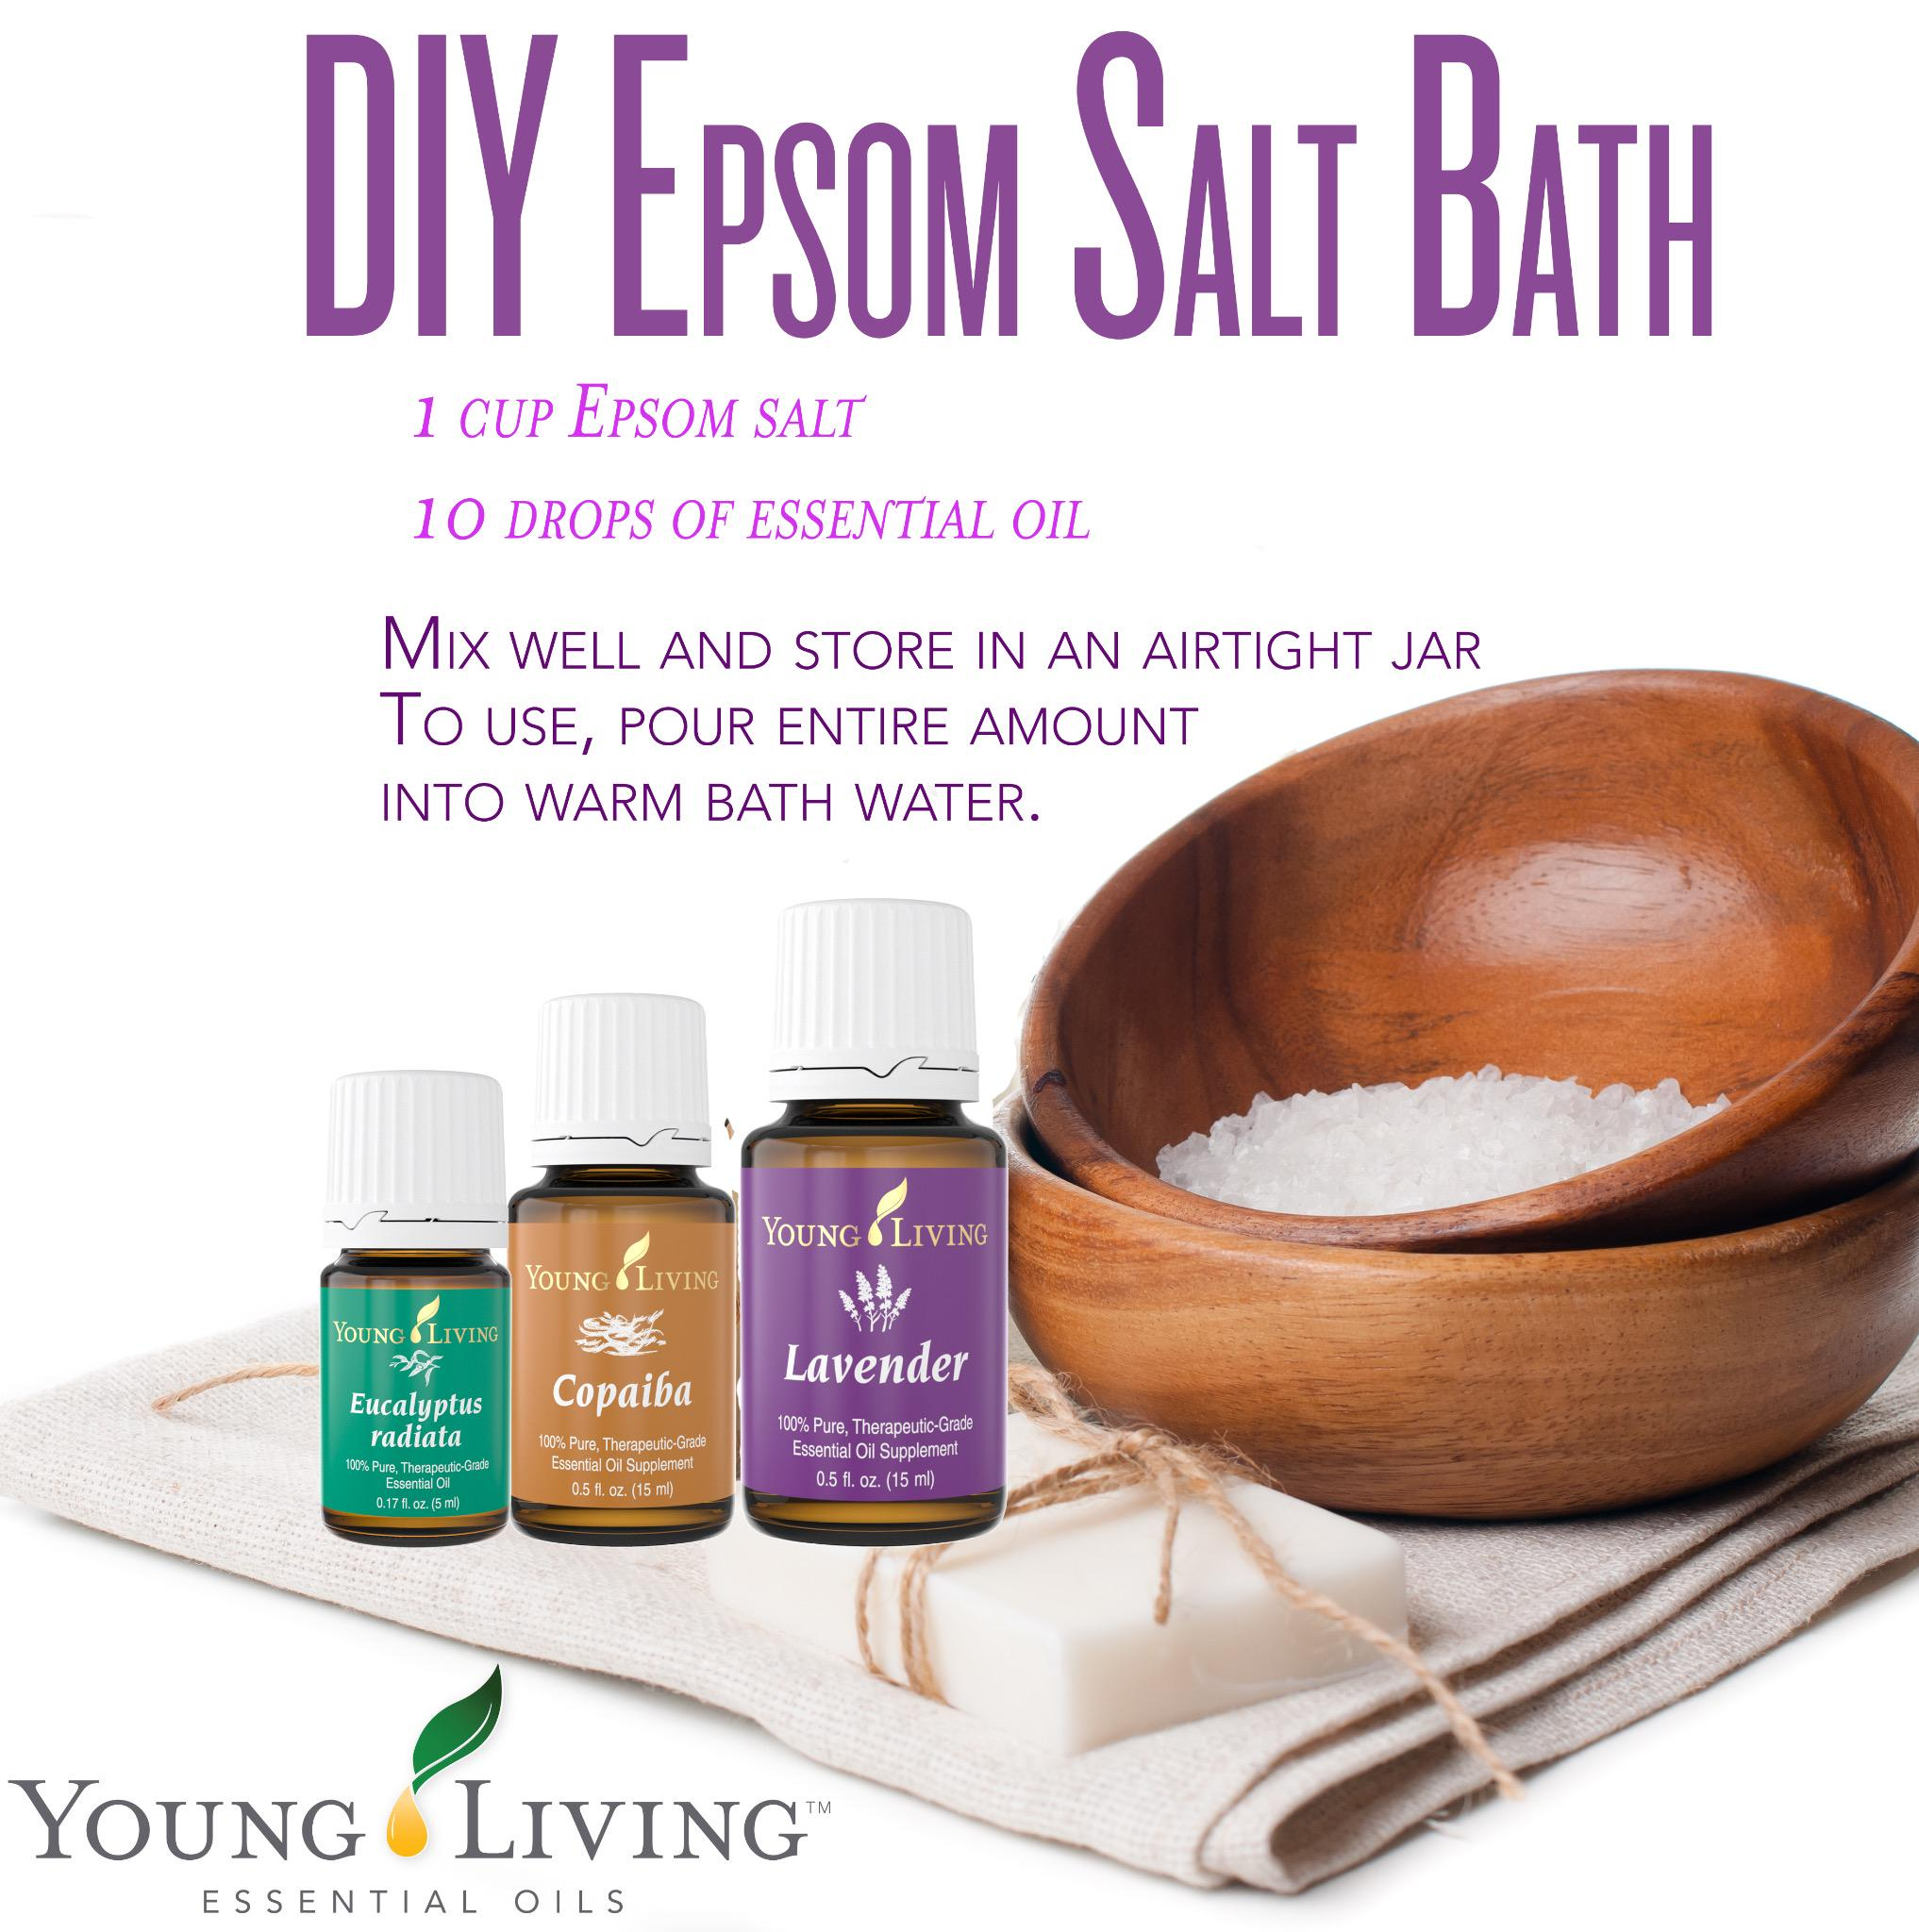 Young Living Essential Oils On Twitter Pamper Yourself With An